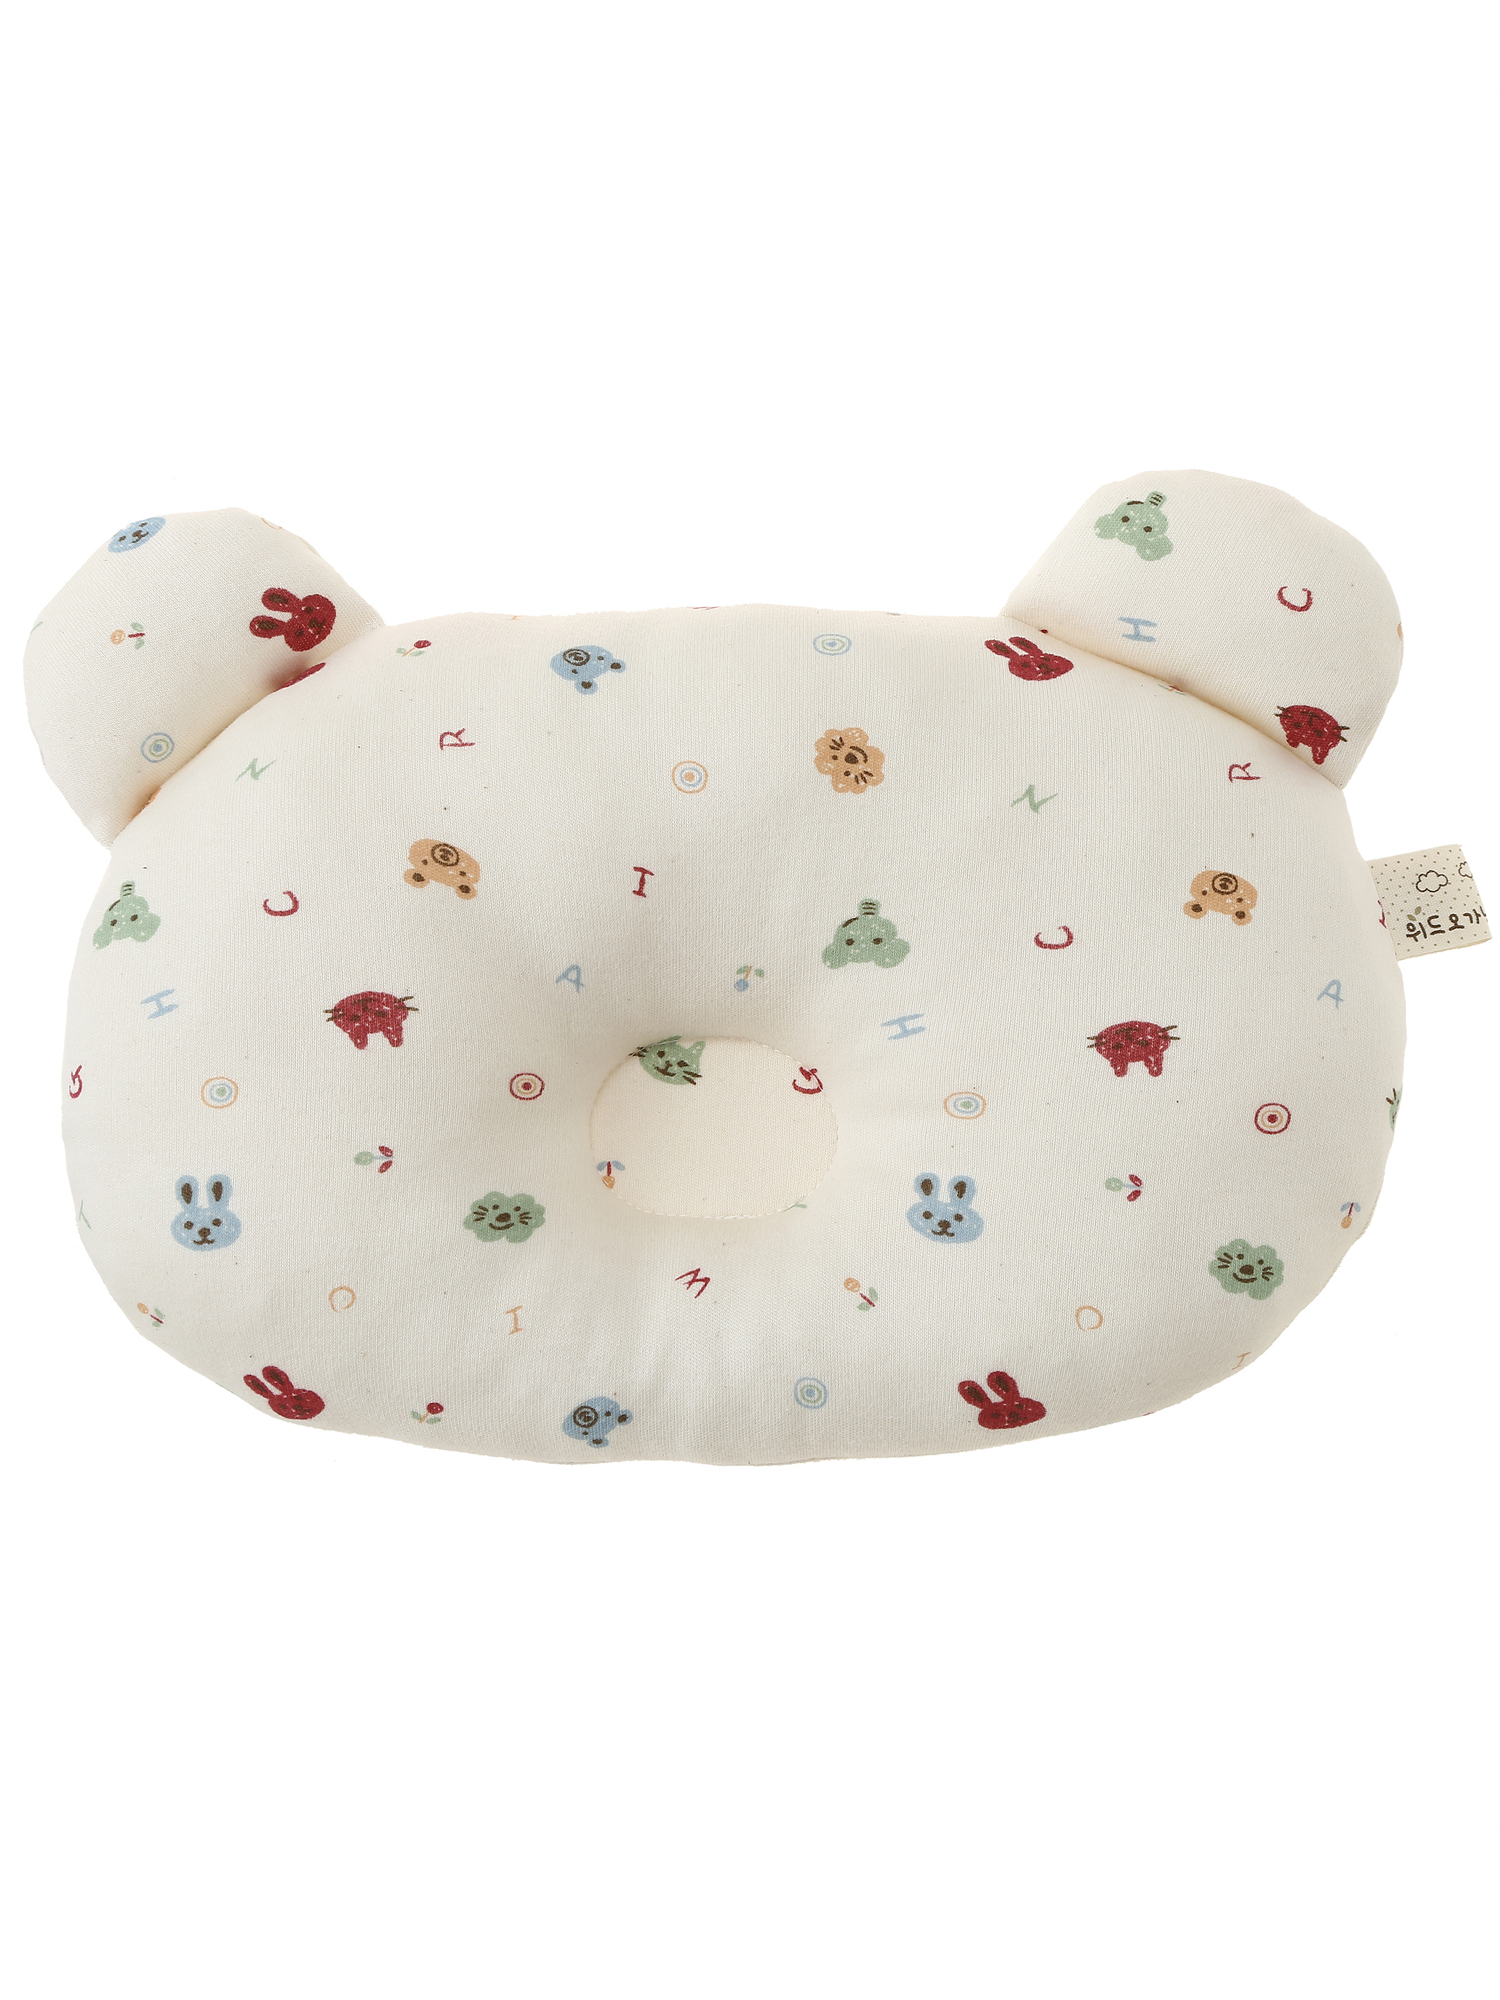 Infant Toddler Head Shaping Pillow for Sleeping PREMIUM 100% Organic Cotton by Withorganic